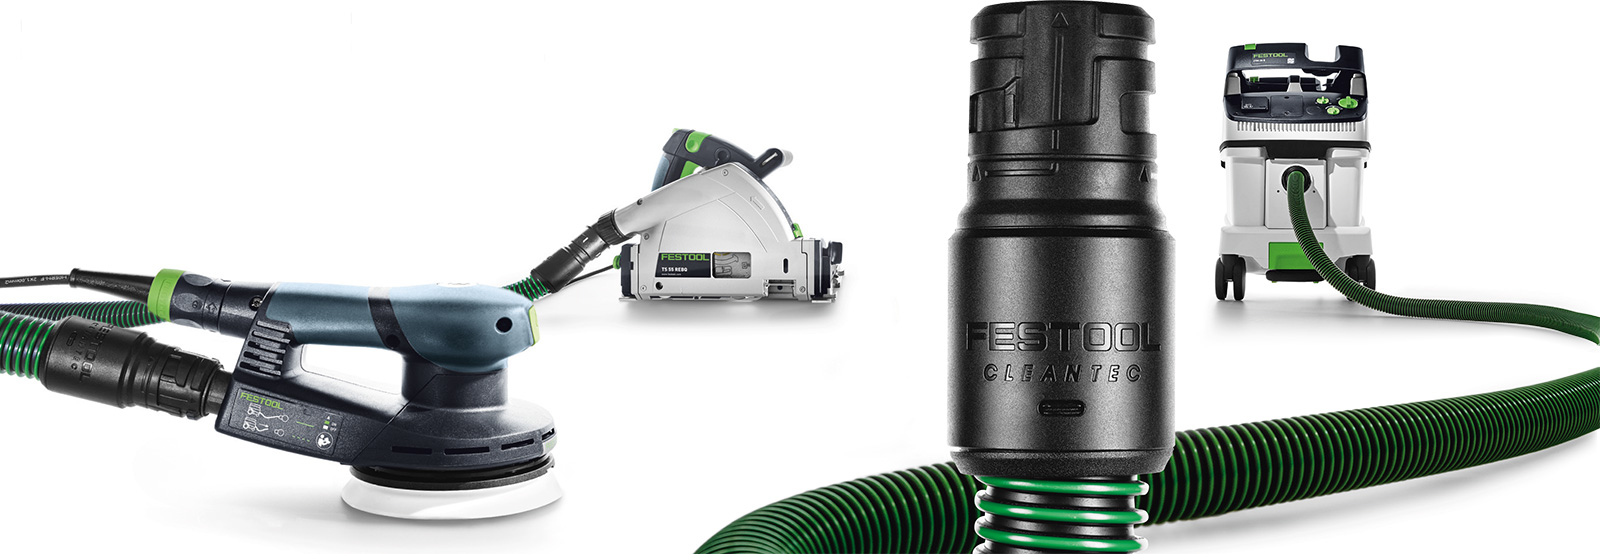 NEW Festool CLEANTEC connecting system